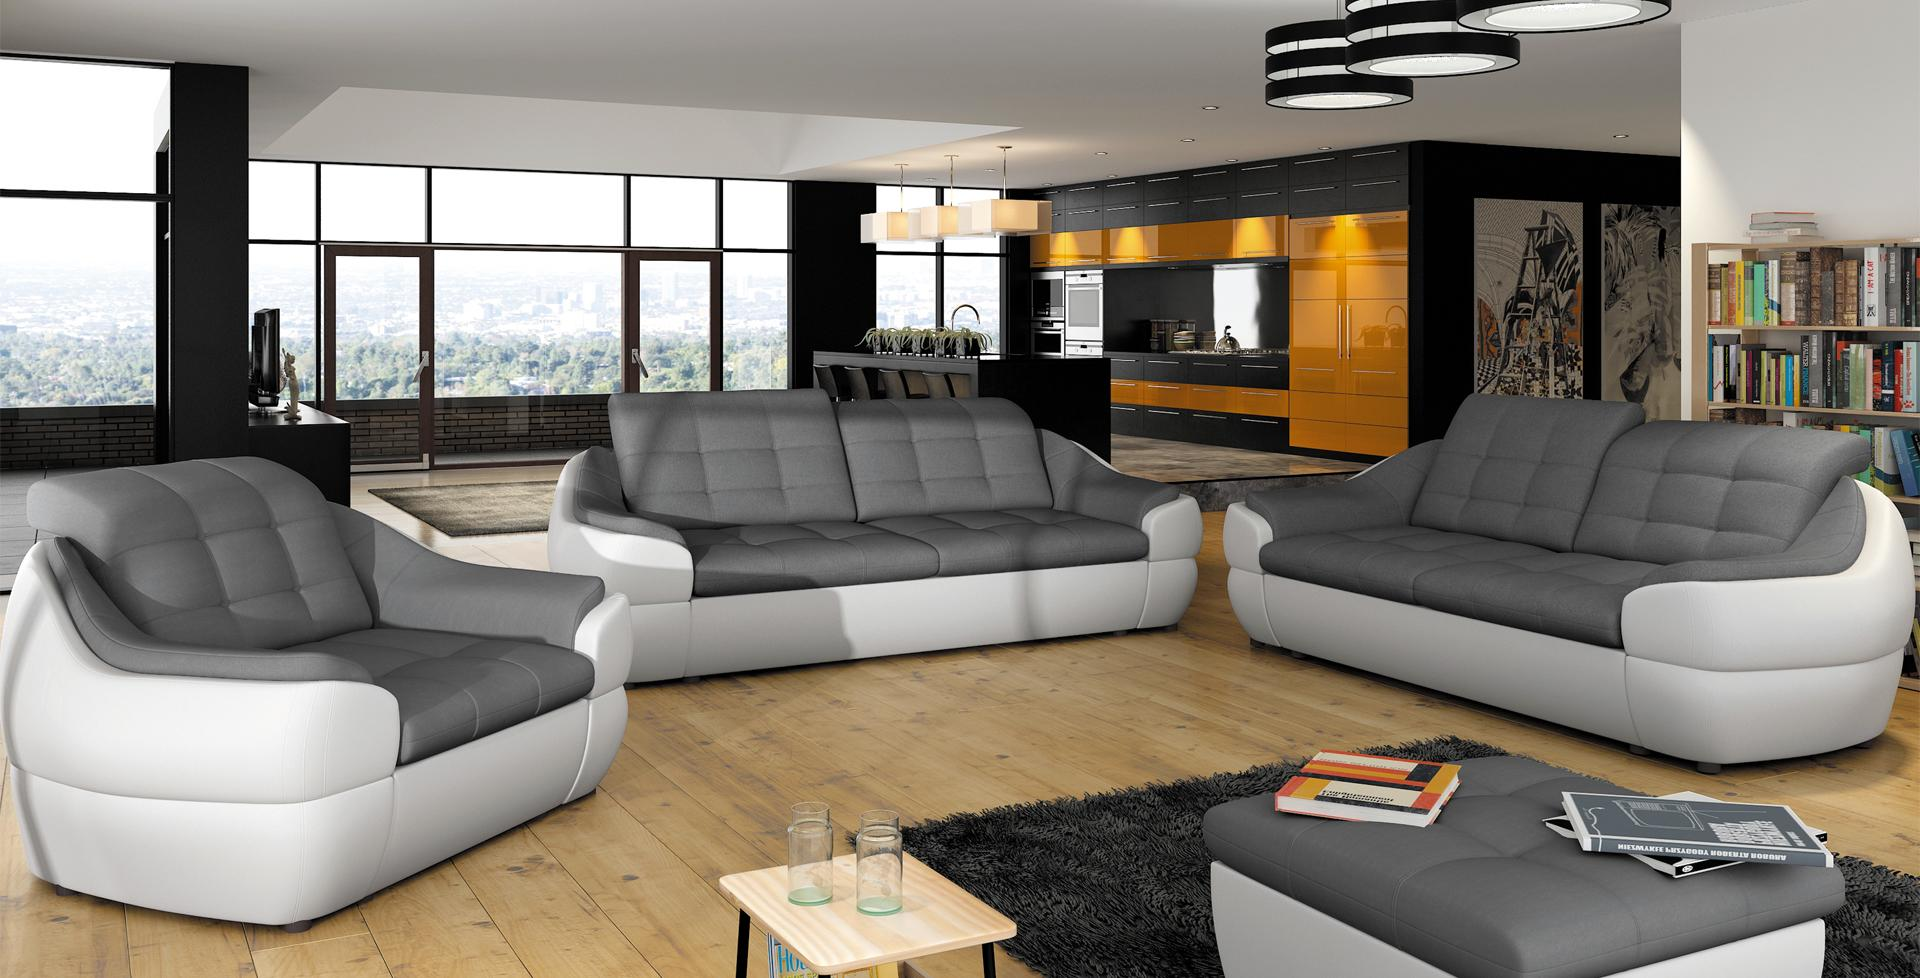 sofagarnitur sofa couch 3 2 1 garnitur mit relax funktion couchgarnitur polster infinity www. Black Bedroom Furniture Sets. Home Design Ideas